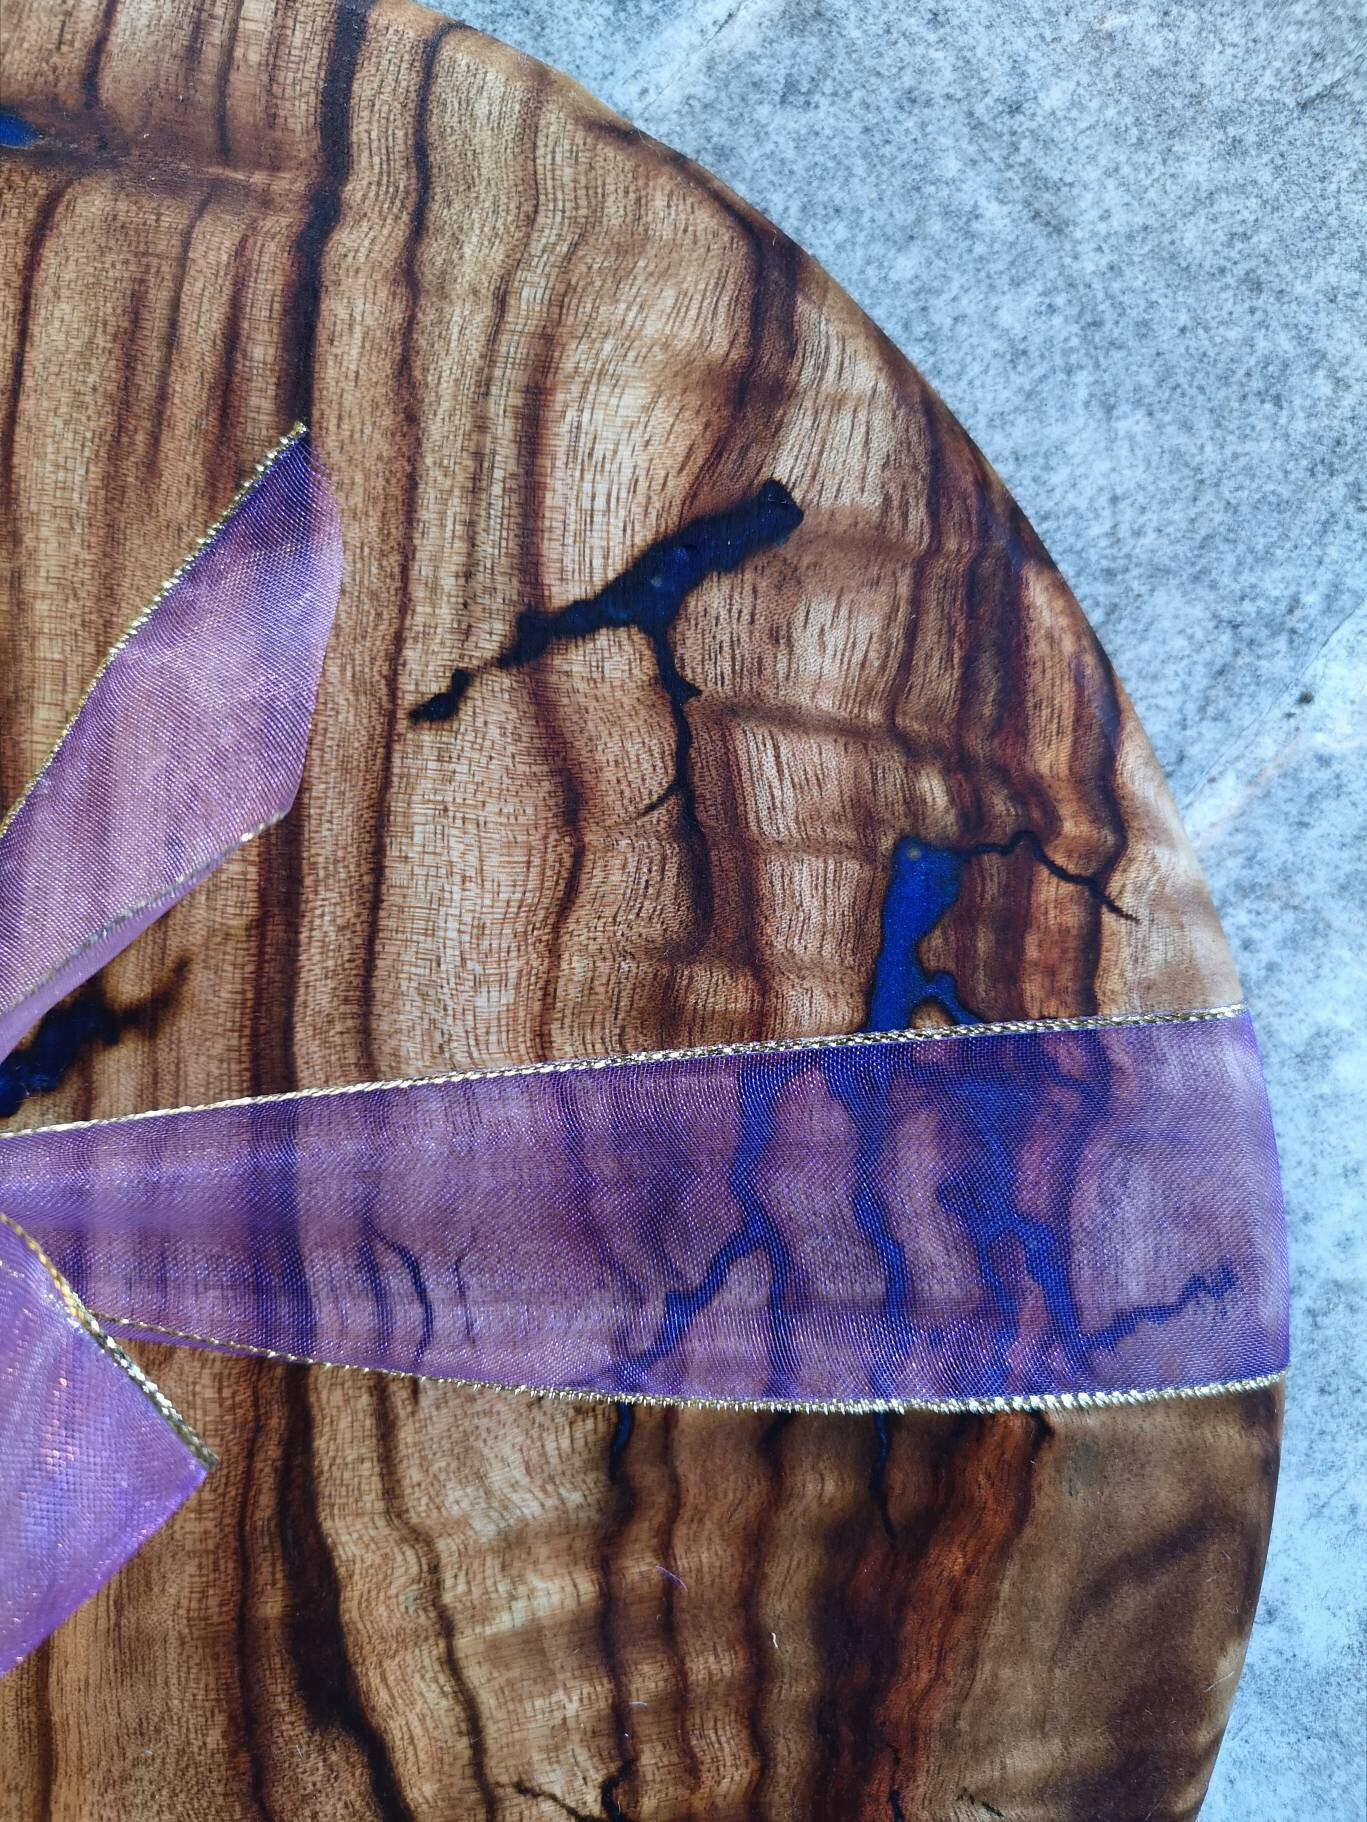 SOLD - Camphour Cheese Board with Lichtenberg Wood Burning